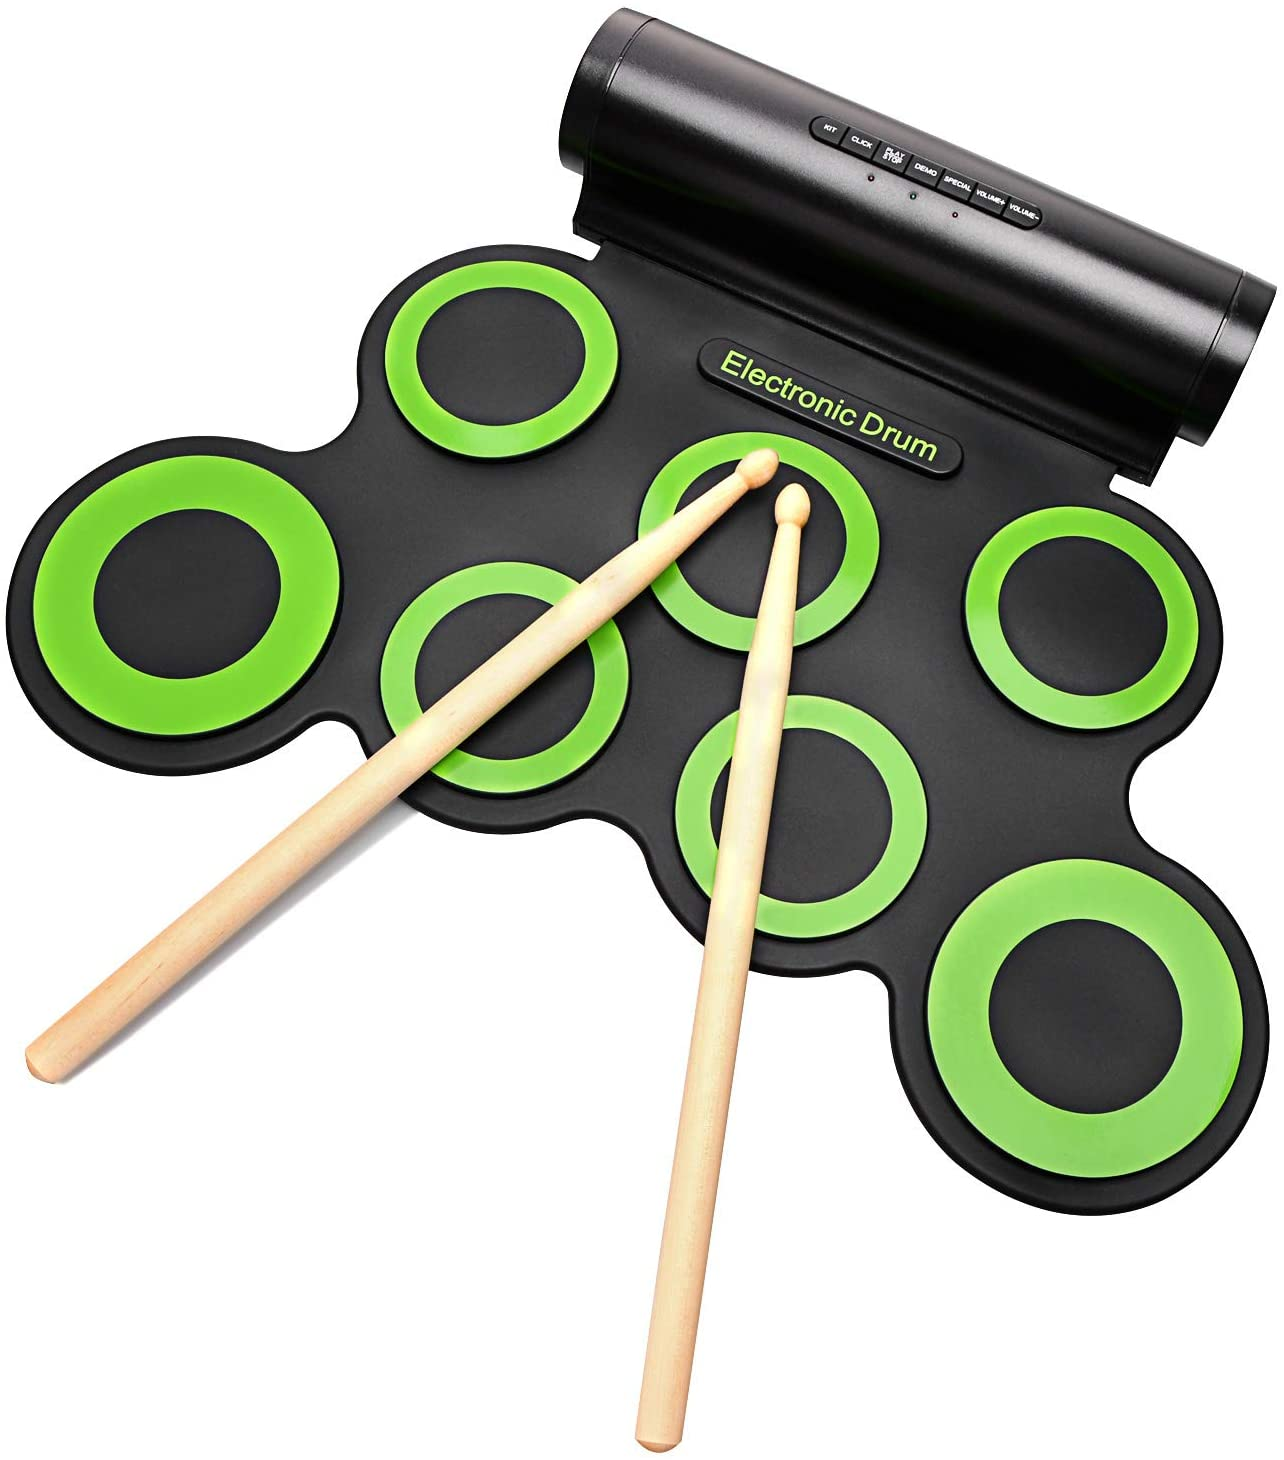 roboller Set, Portable Electronic Built-In Speaker (DC Powered) -Digital Roll-Up Touch 7 Labeled Pads and 2 Foot Pedals, Midi Drum Up to 10H Playing Time, Holiday Gift for Kids, 3